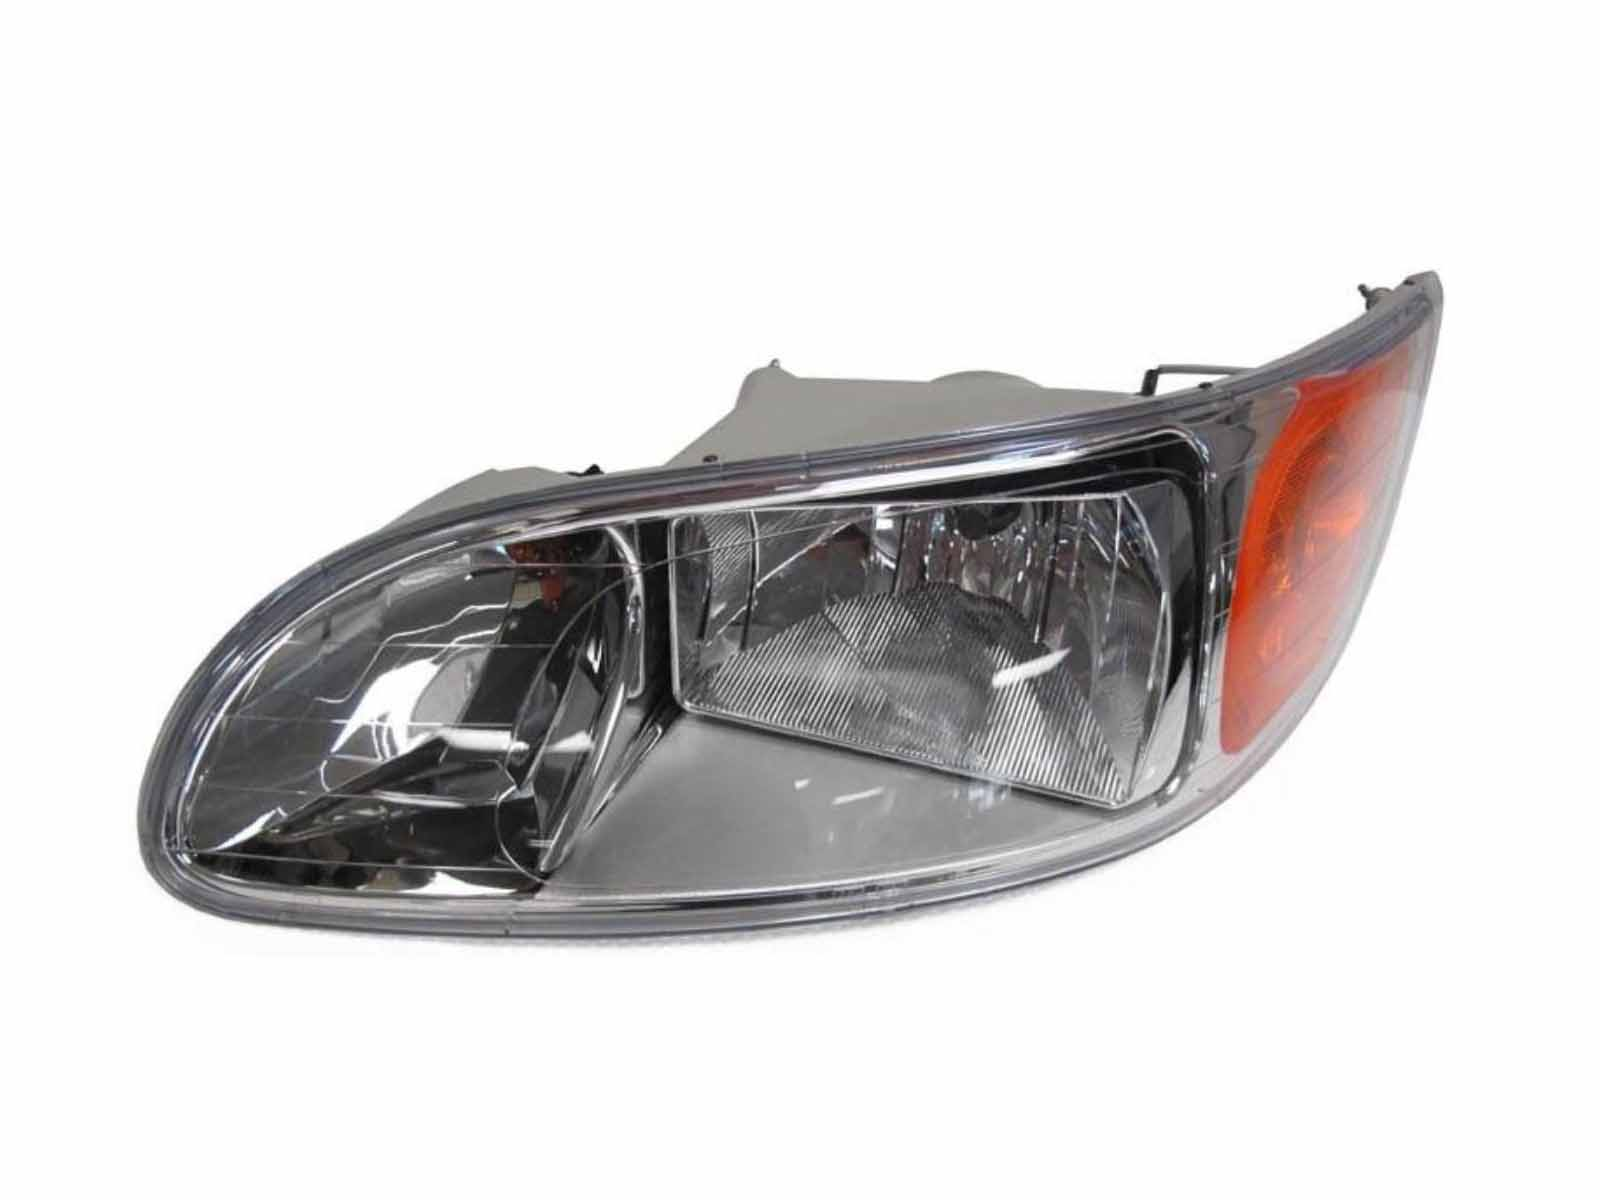 Headlight Replacement For 2000